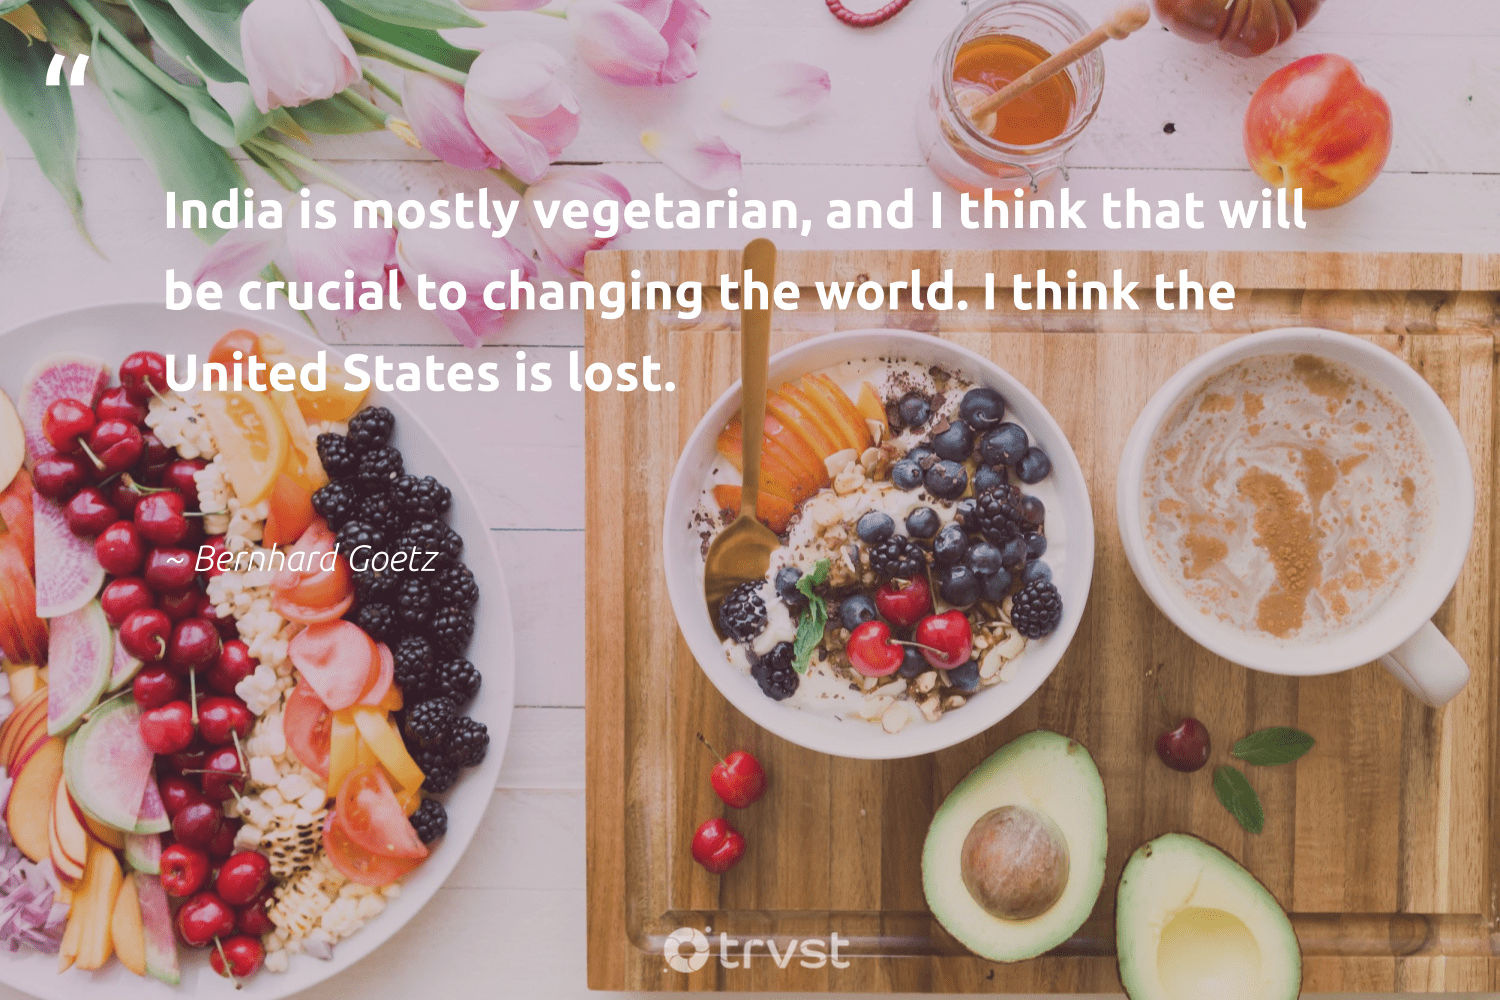 """""""India is mostly vegetarian, and I think that will be crucial to changing the world. I think the United States is lost.""""  - Bernhard Goetz #trvst #quotes #vegan #india #vegetarian #whatveganseat #sustainable #sustainability #gogreen #veganlife #greenliving #fashion"""